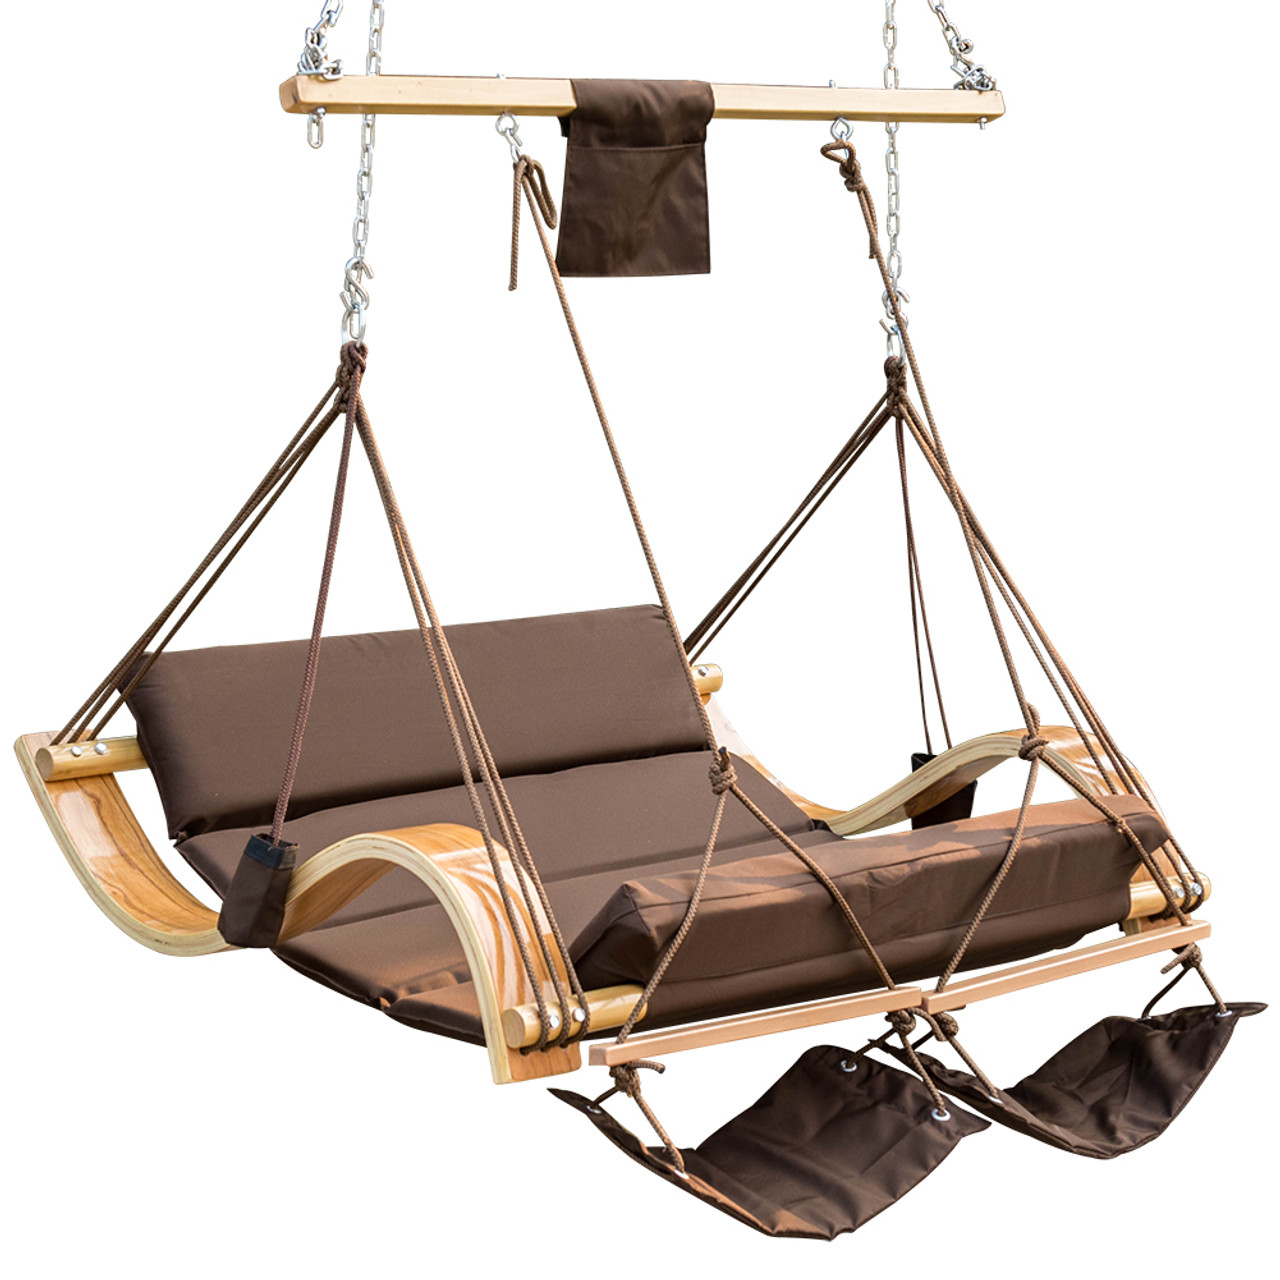 Marvelous Lazy Daze Hammocks Deluxe Oversized Double Hanging Rope Chair Cotton Padded  Swing Chair Wood Arc Hammock